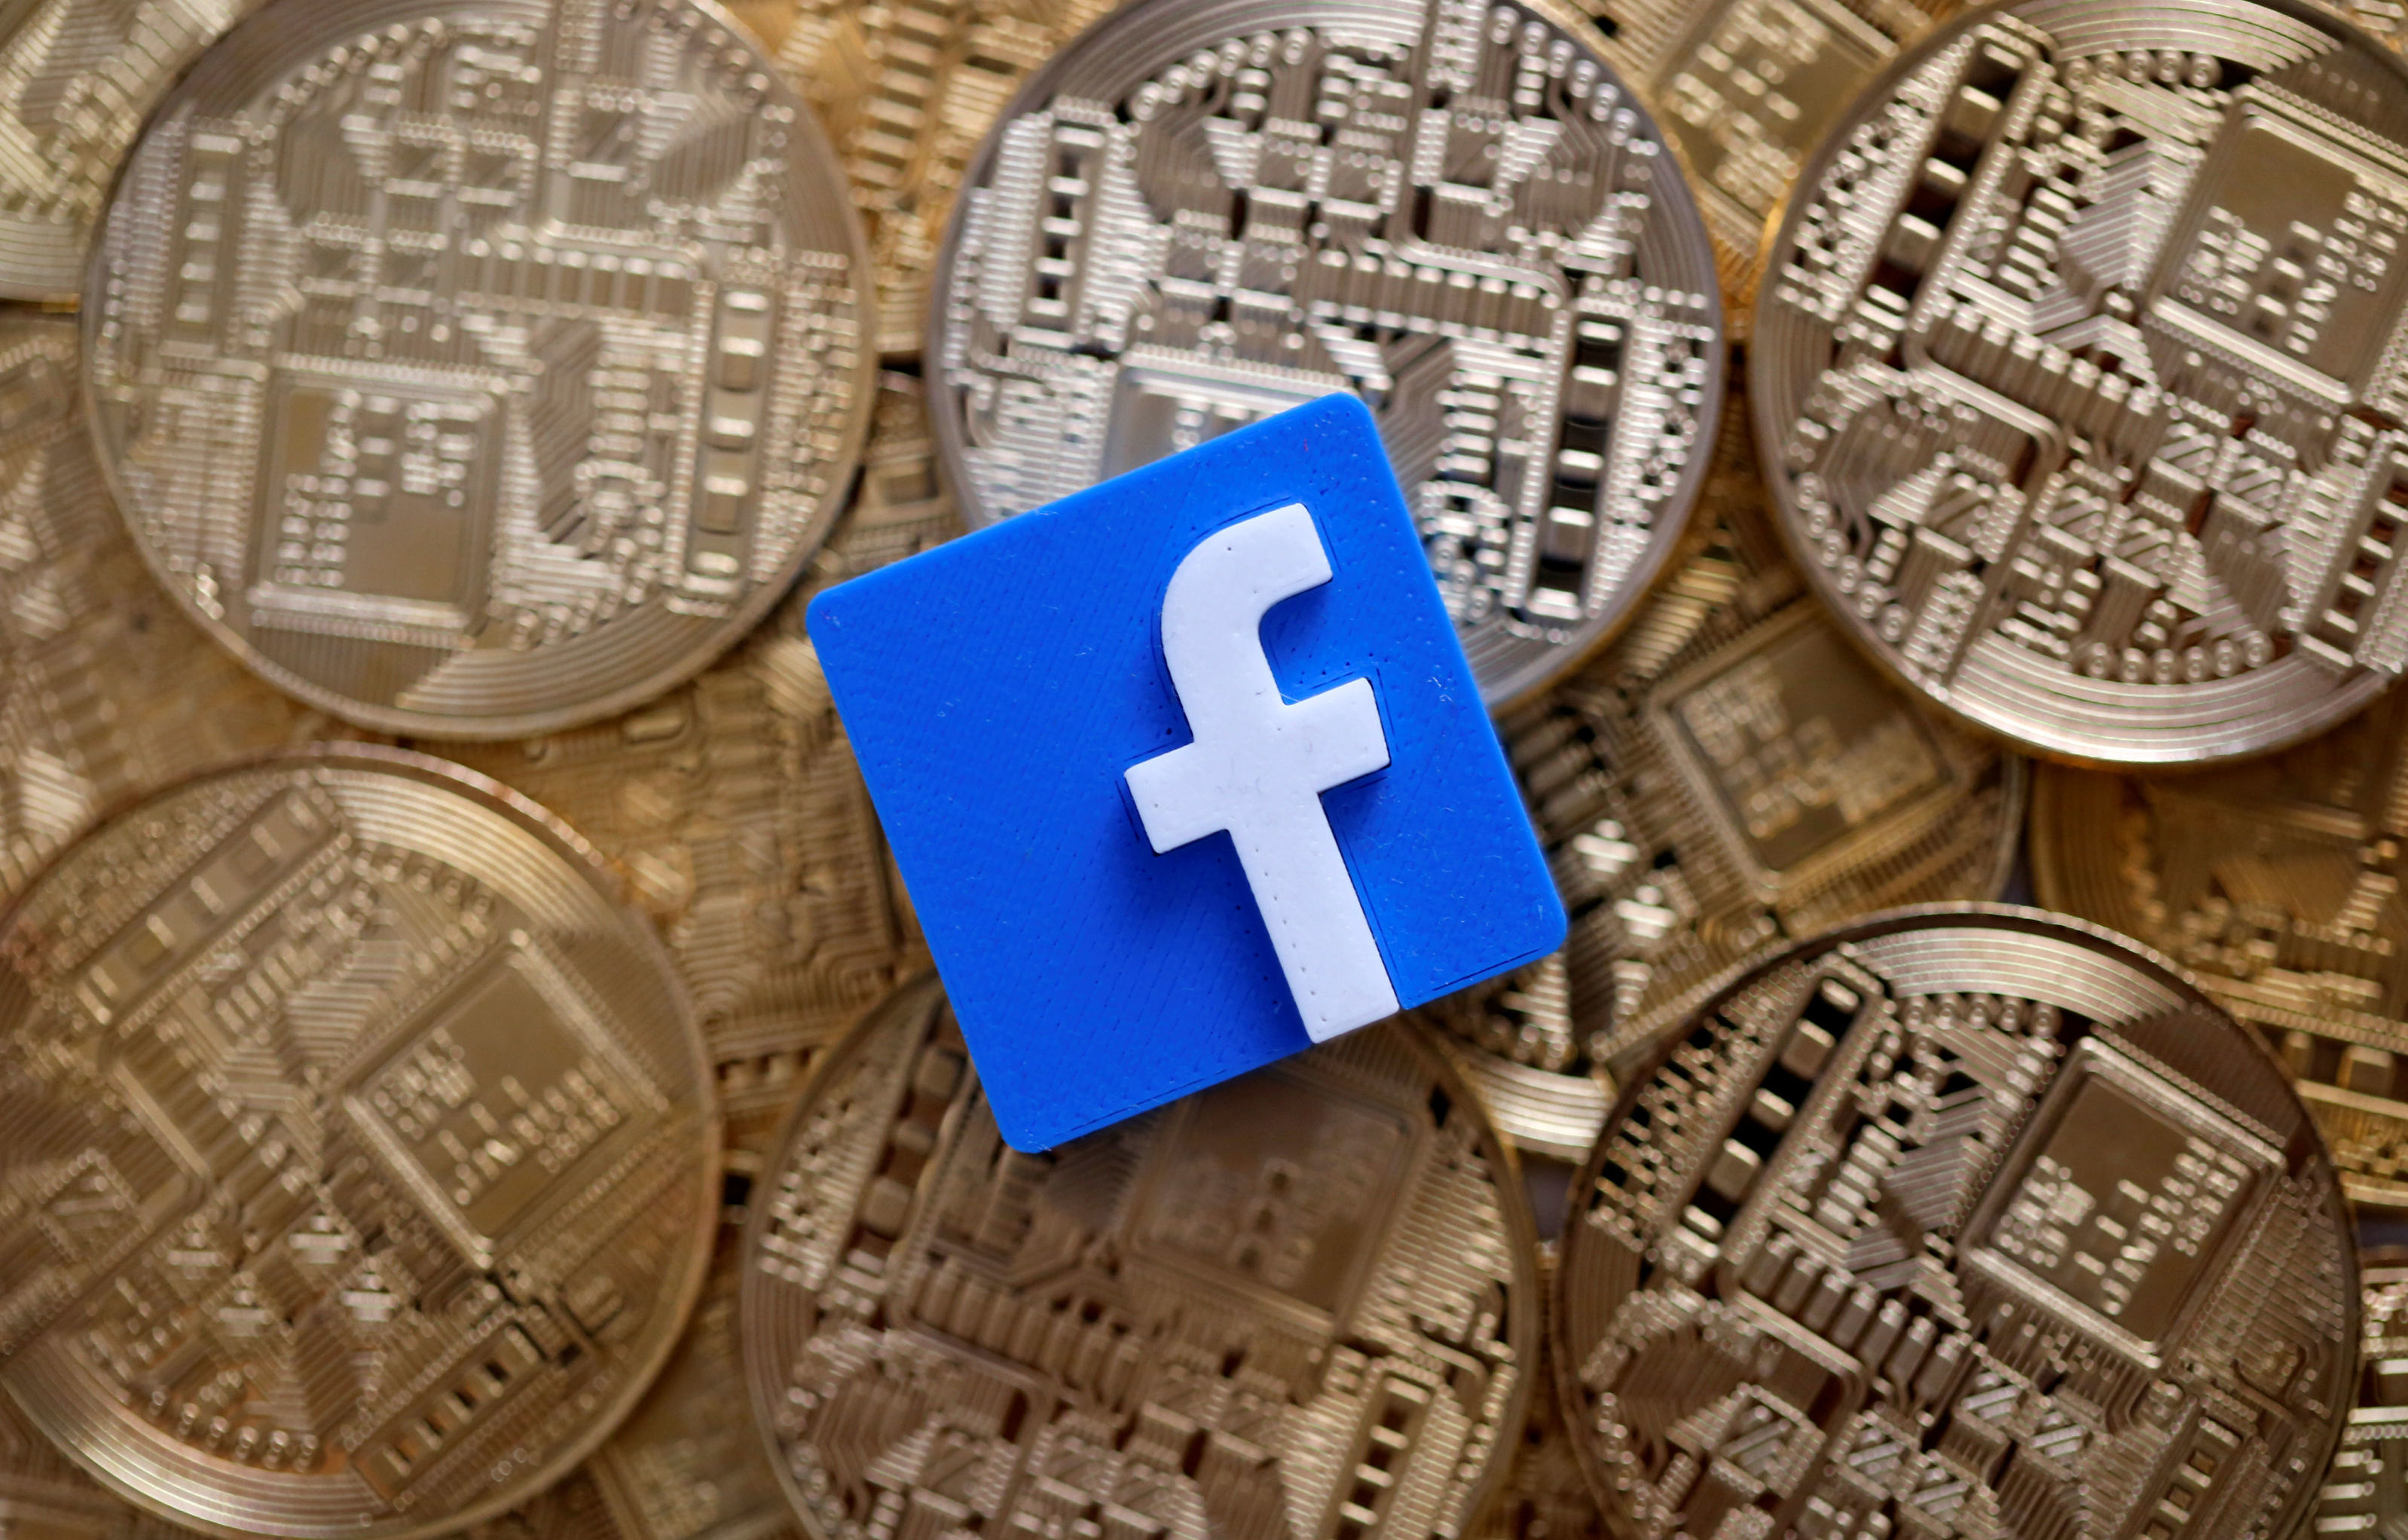 Facebook co-founder says Libra could shift monetary clout to private companies